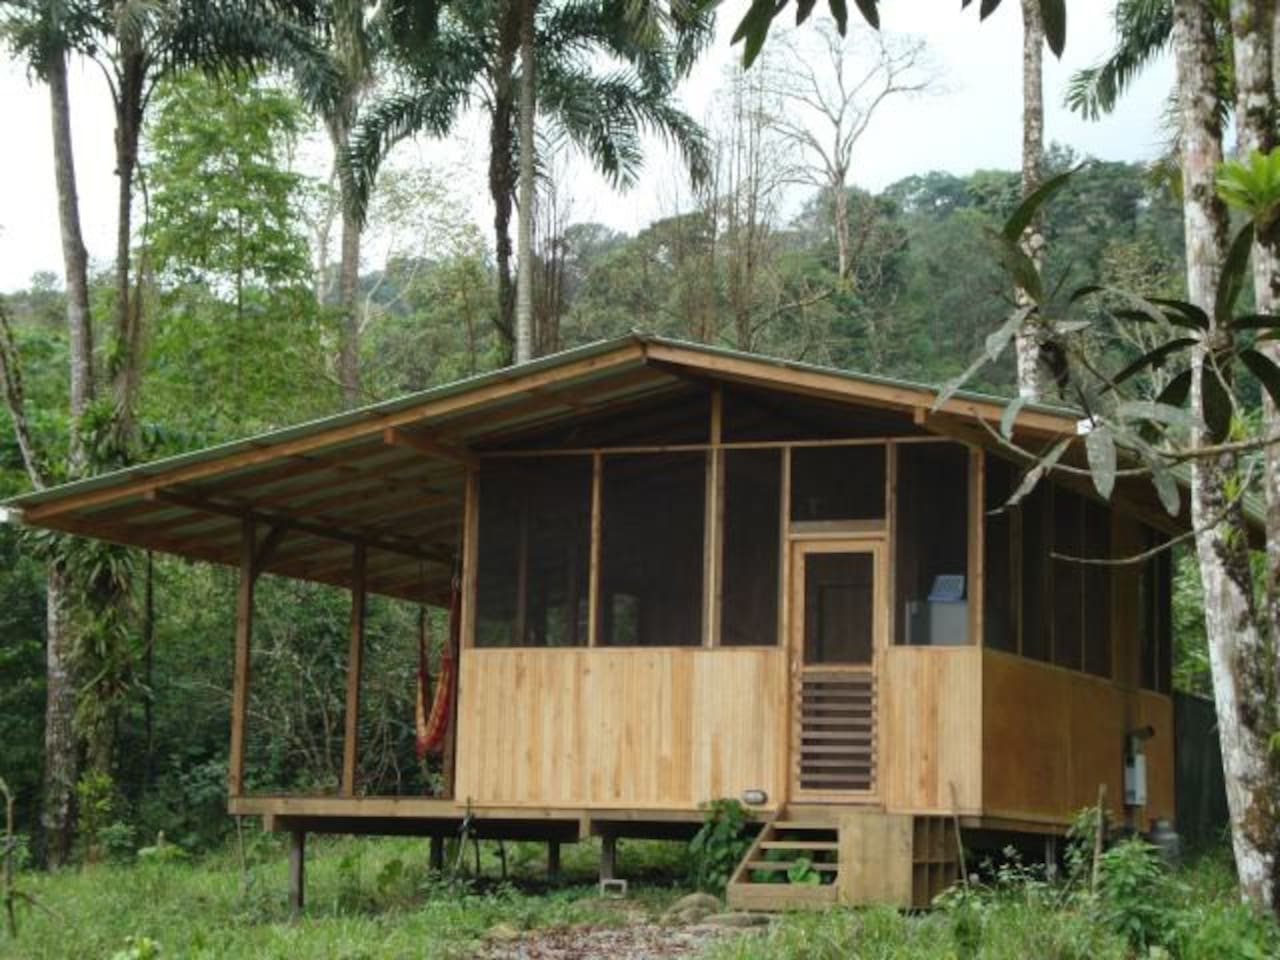 Howler Monkey Hideaway is a wood cabina with large open roofed deck on the side.